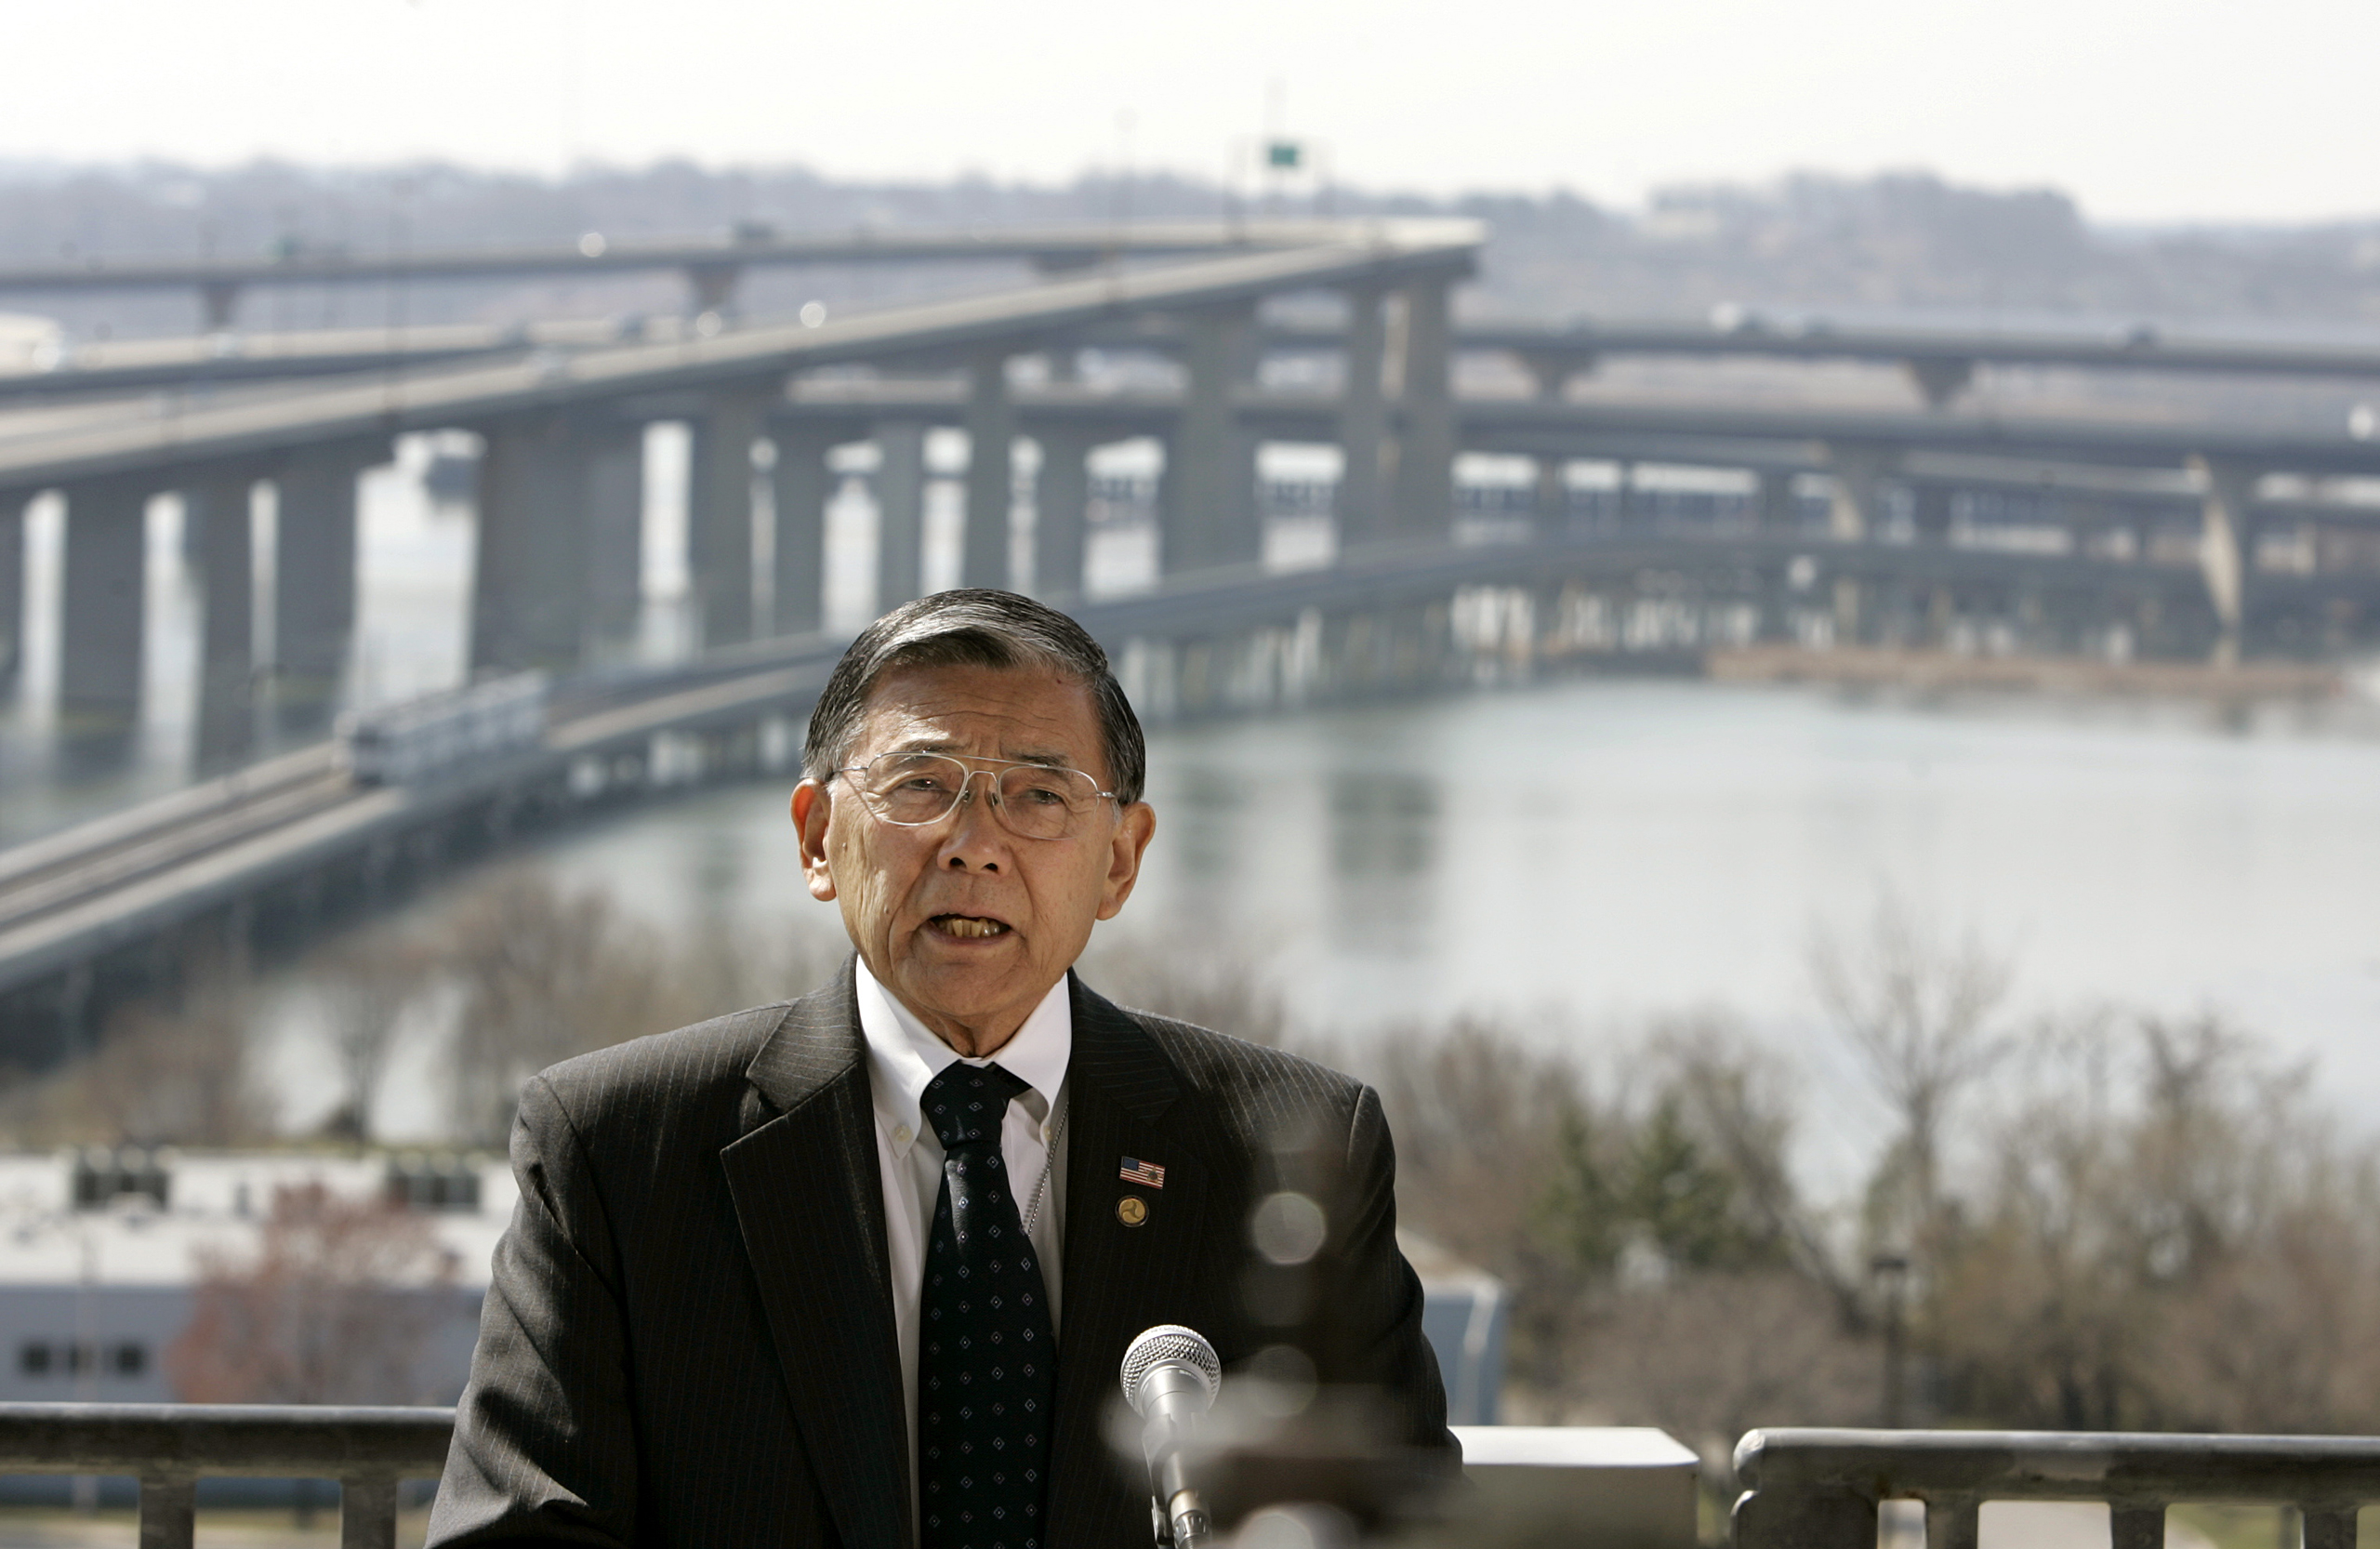 Norman Y. Mineta, Transportation Secretary under the George W. Bush Administration, delivering a speech in Baltimore on March 29, 2006.